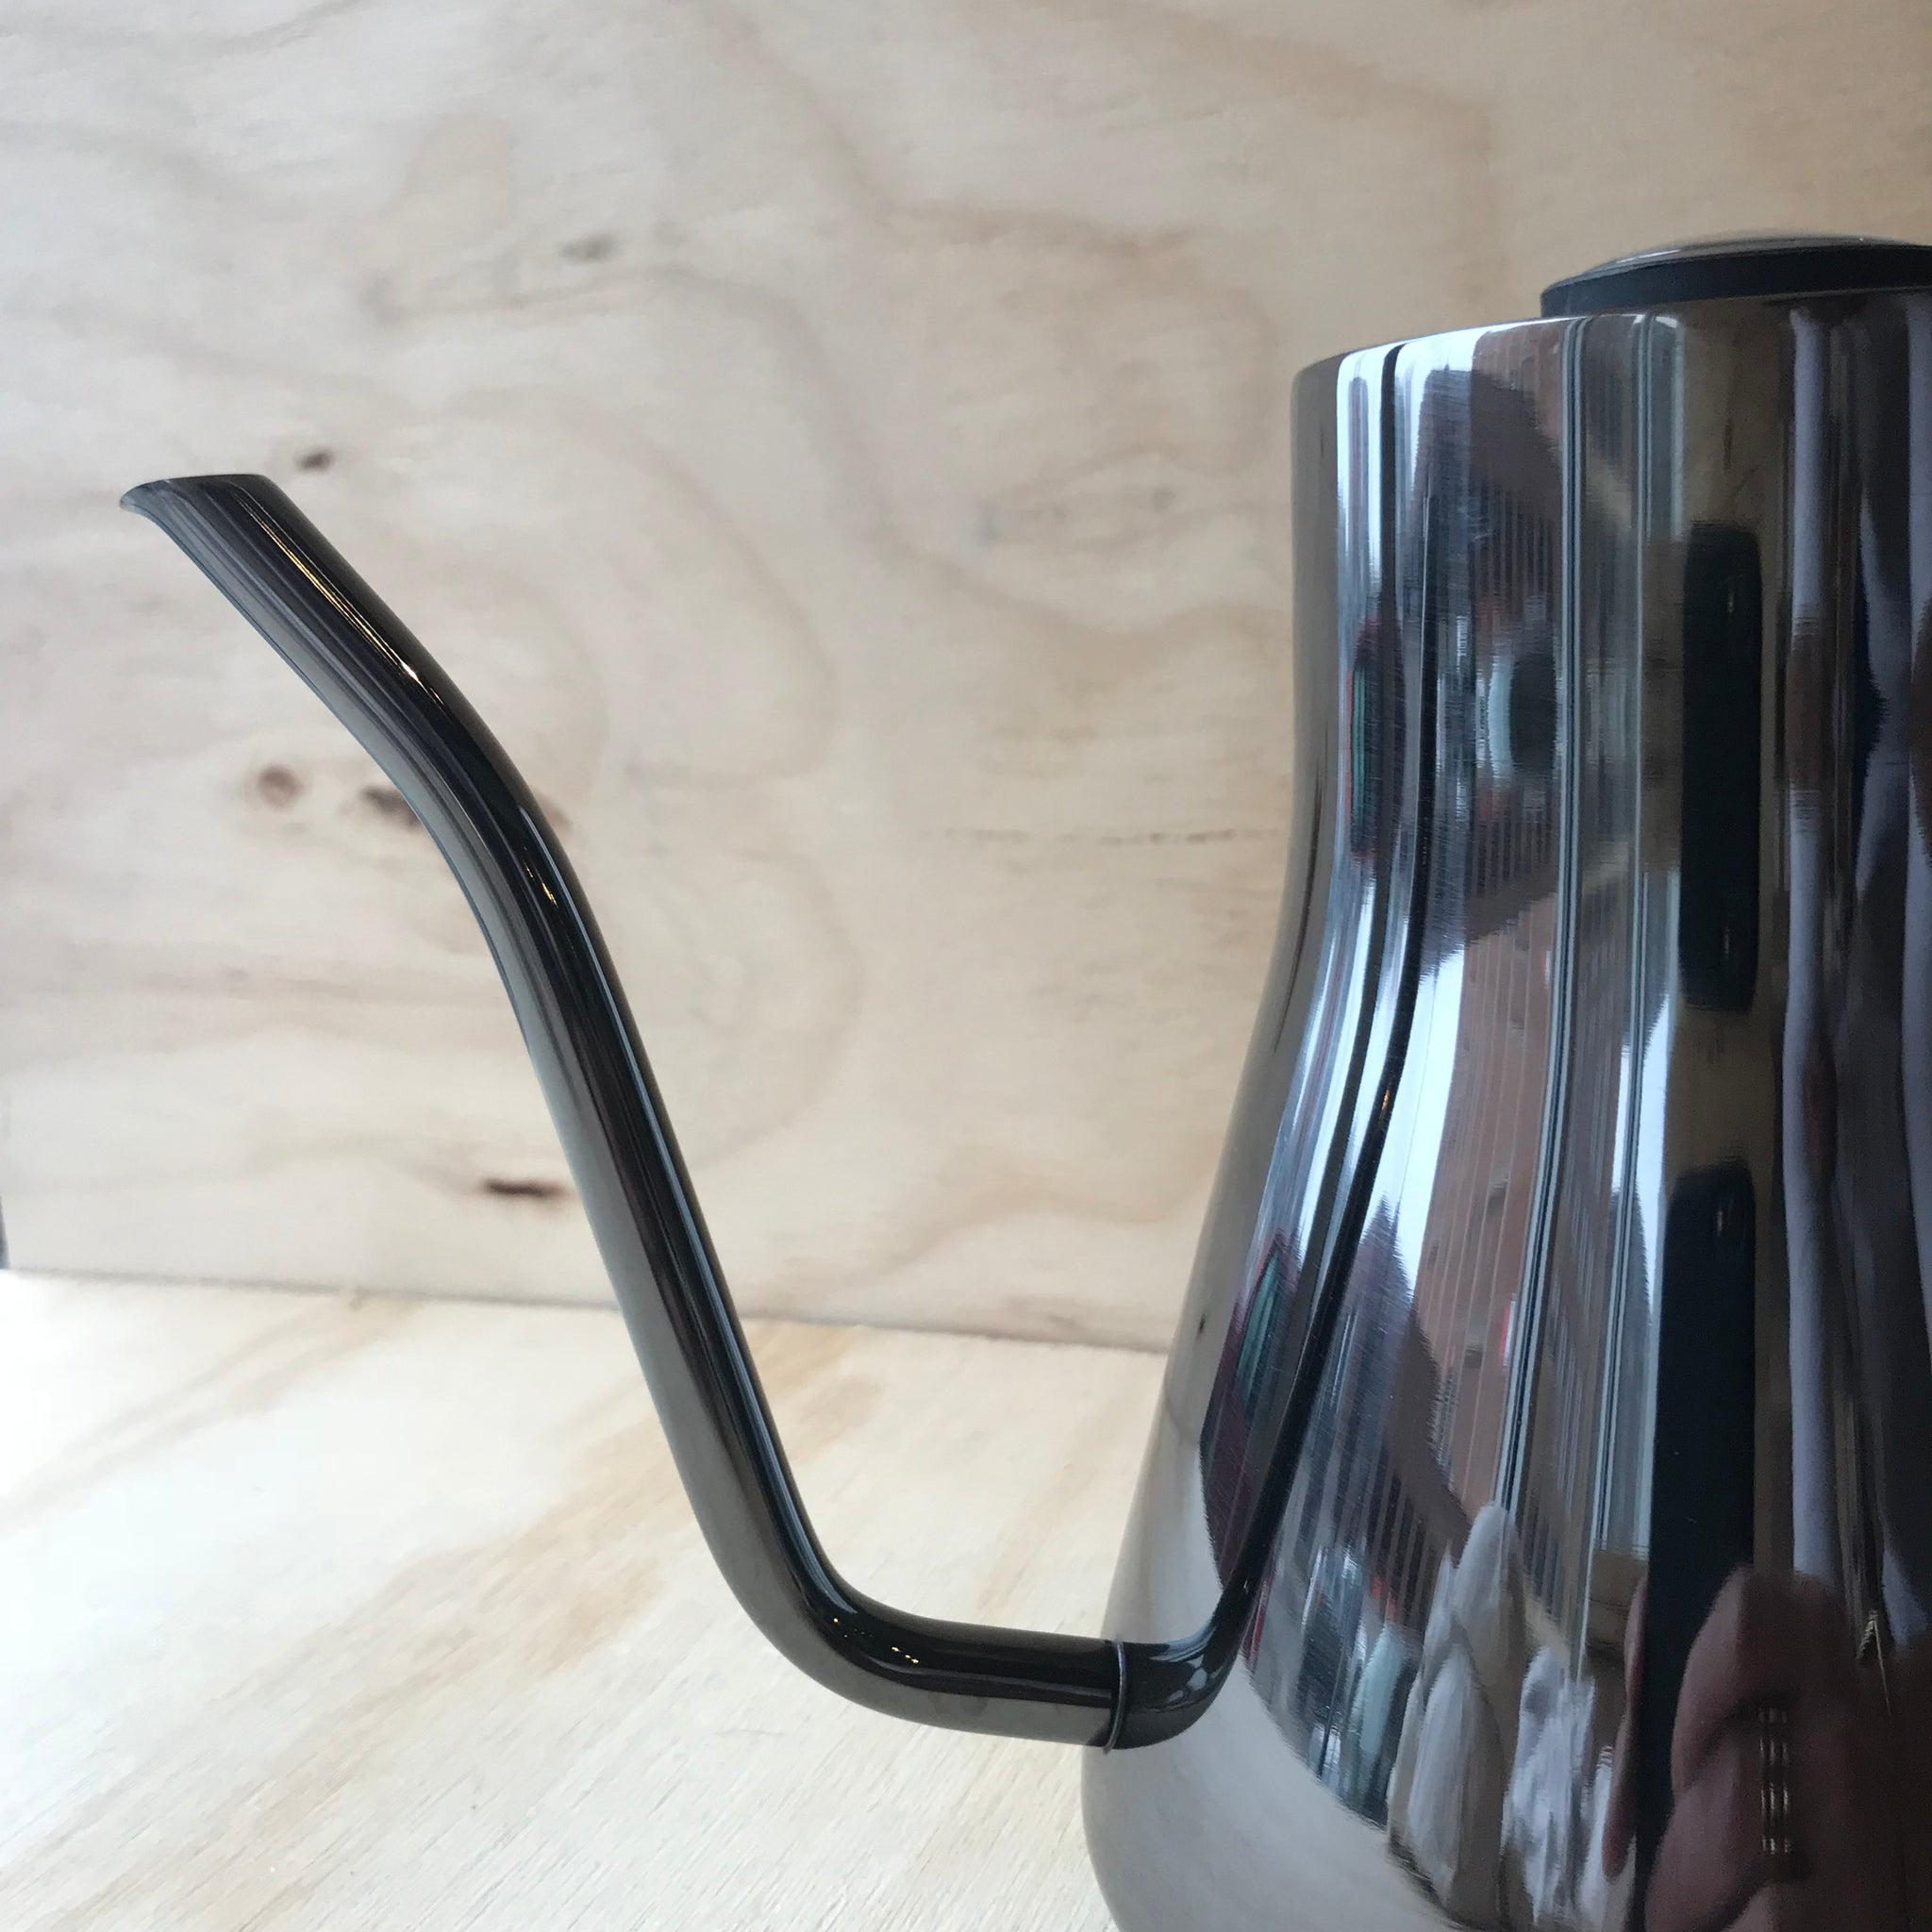 Limited Edition Stagg Graphite Kettle with Thermometer by Fellow